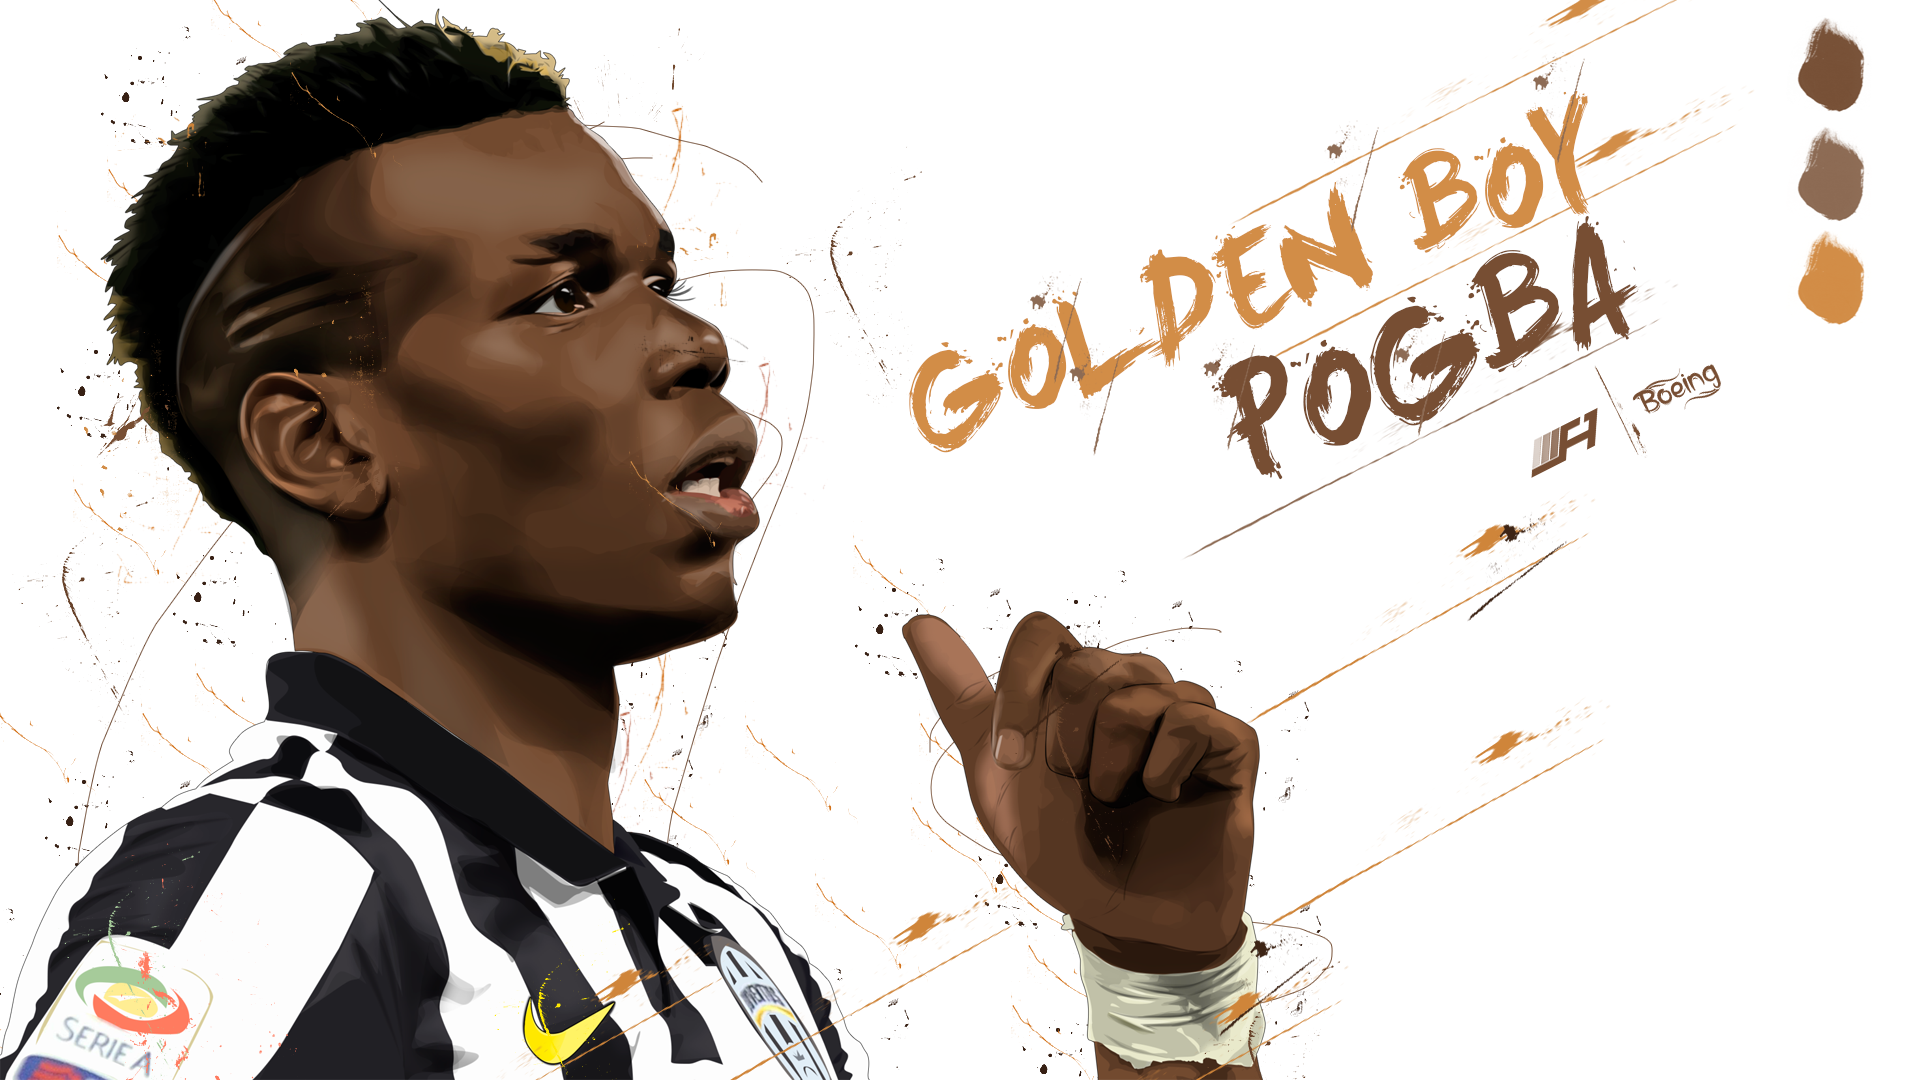 Paul Labile Pogba Wallpapers And Backgrounds